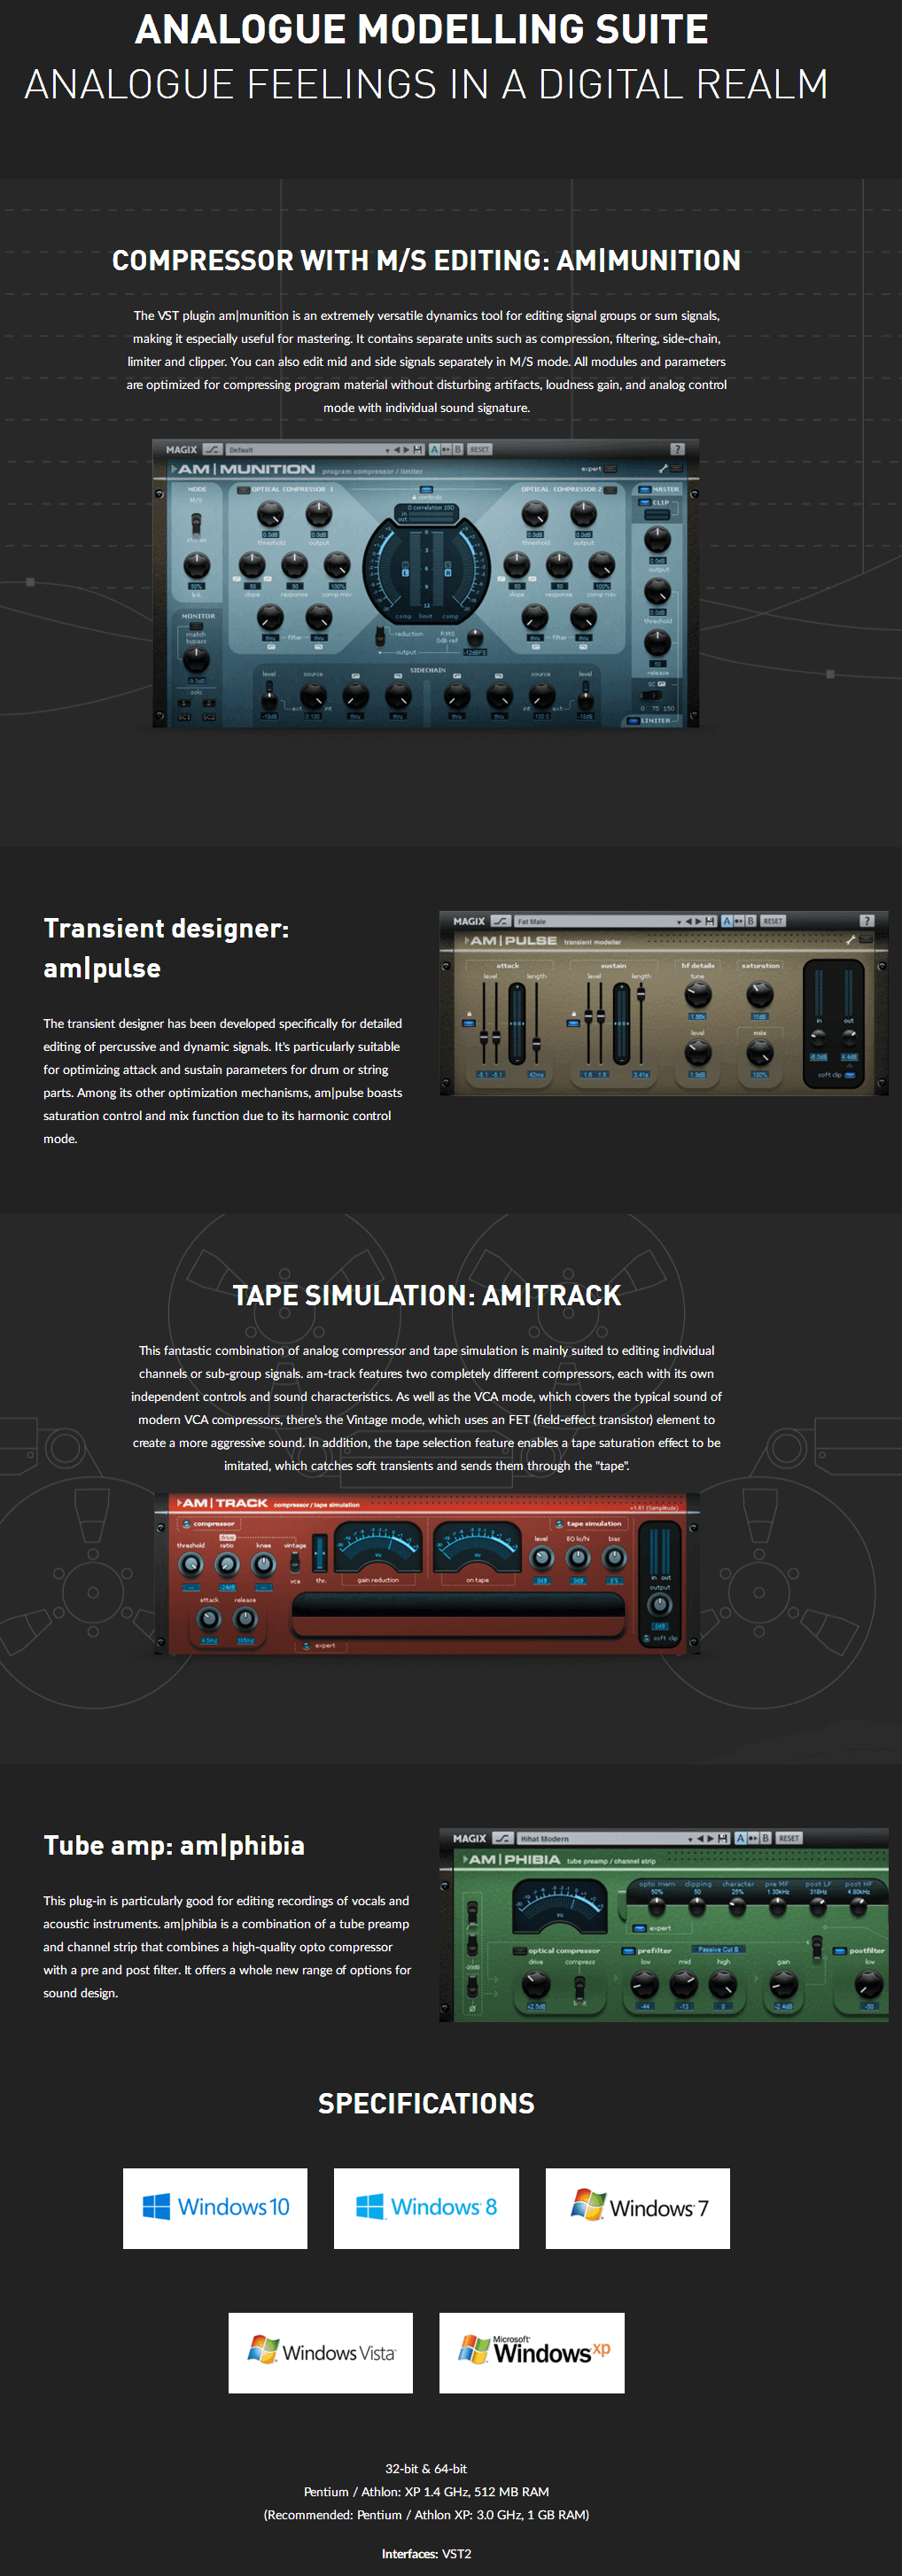 MAGIX Analogue Modelling Suite Plus Feature